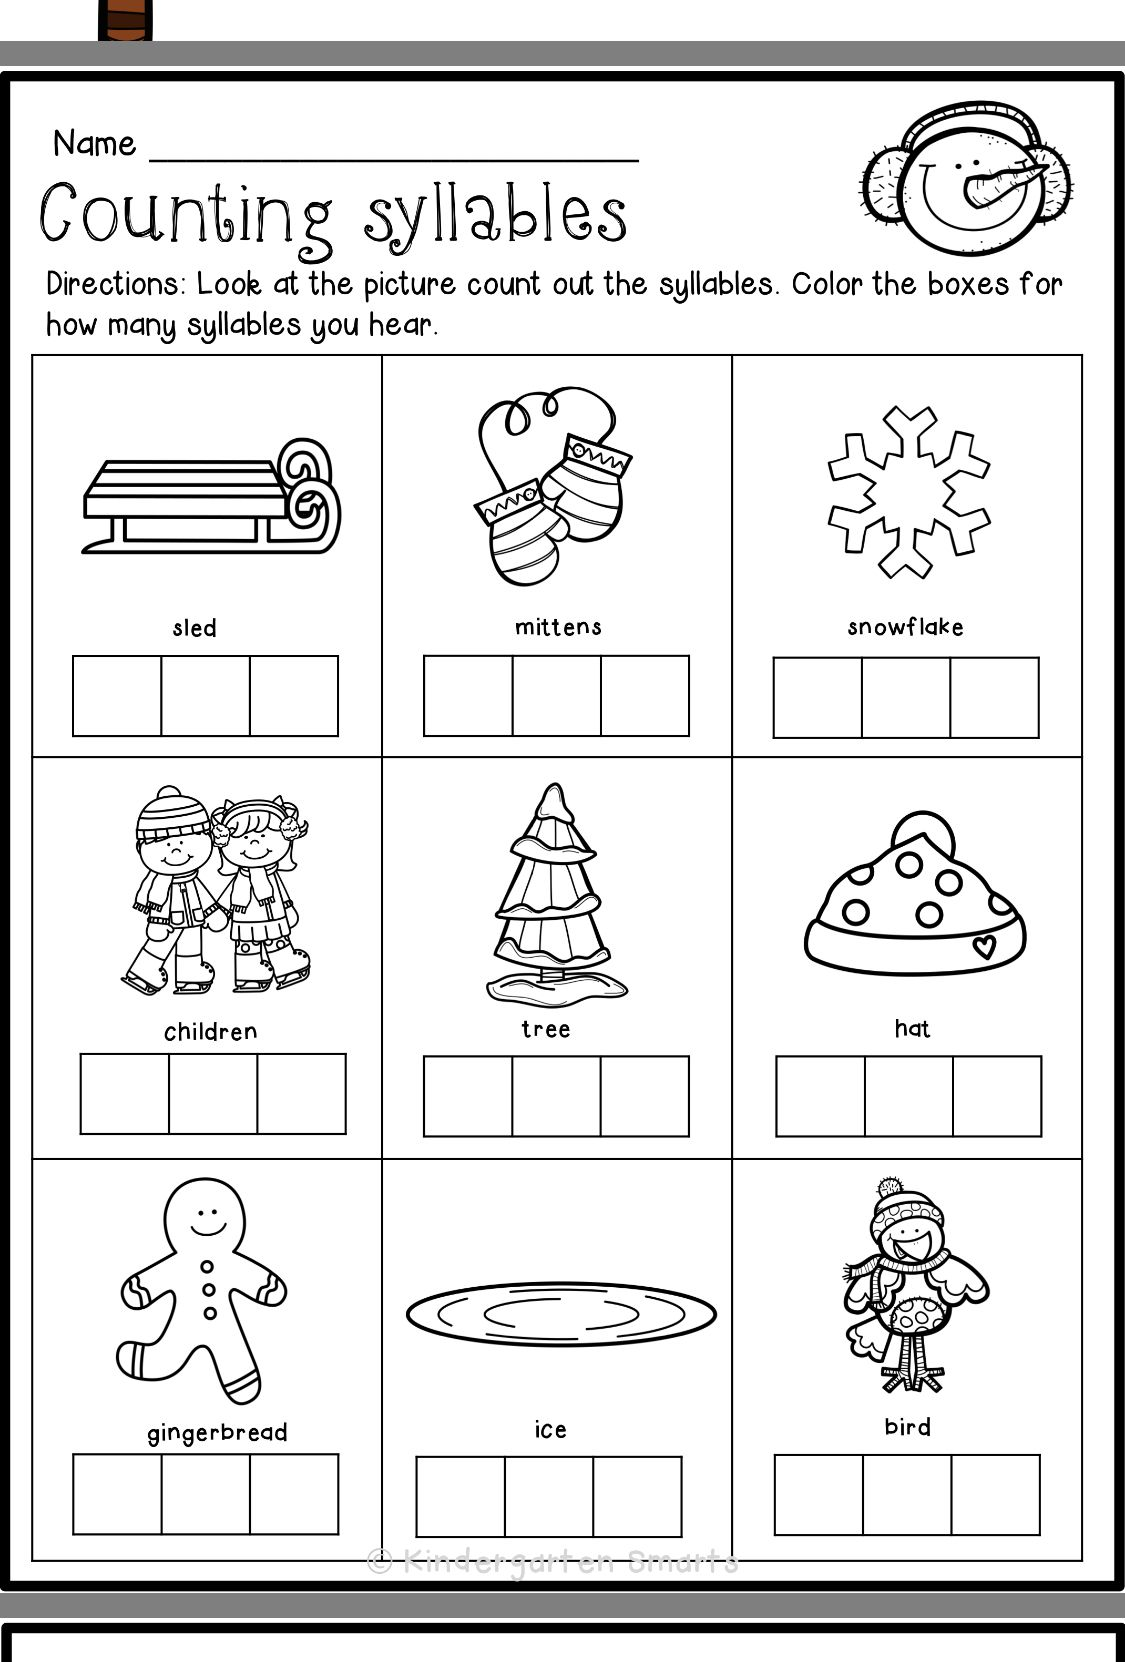 Pin By Courtney Red On Kindergarten Fun